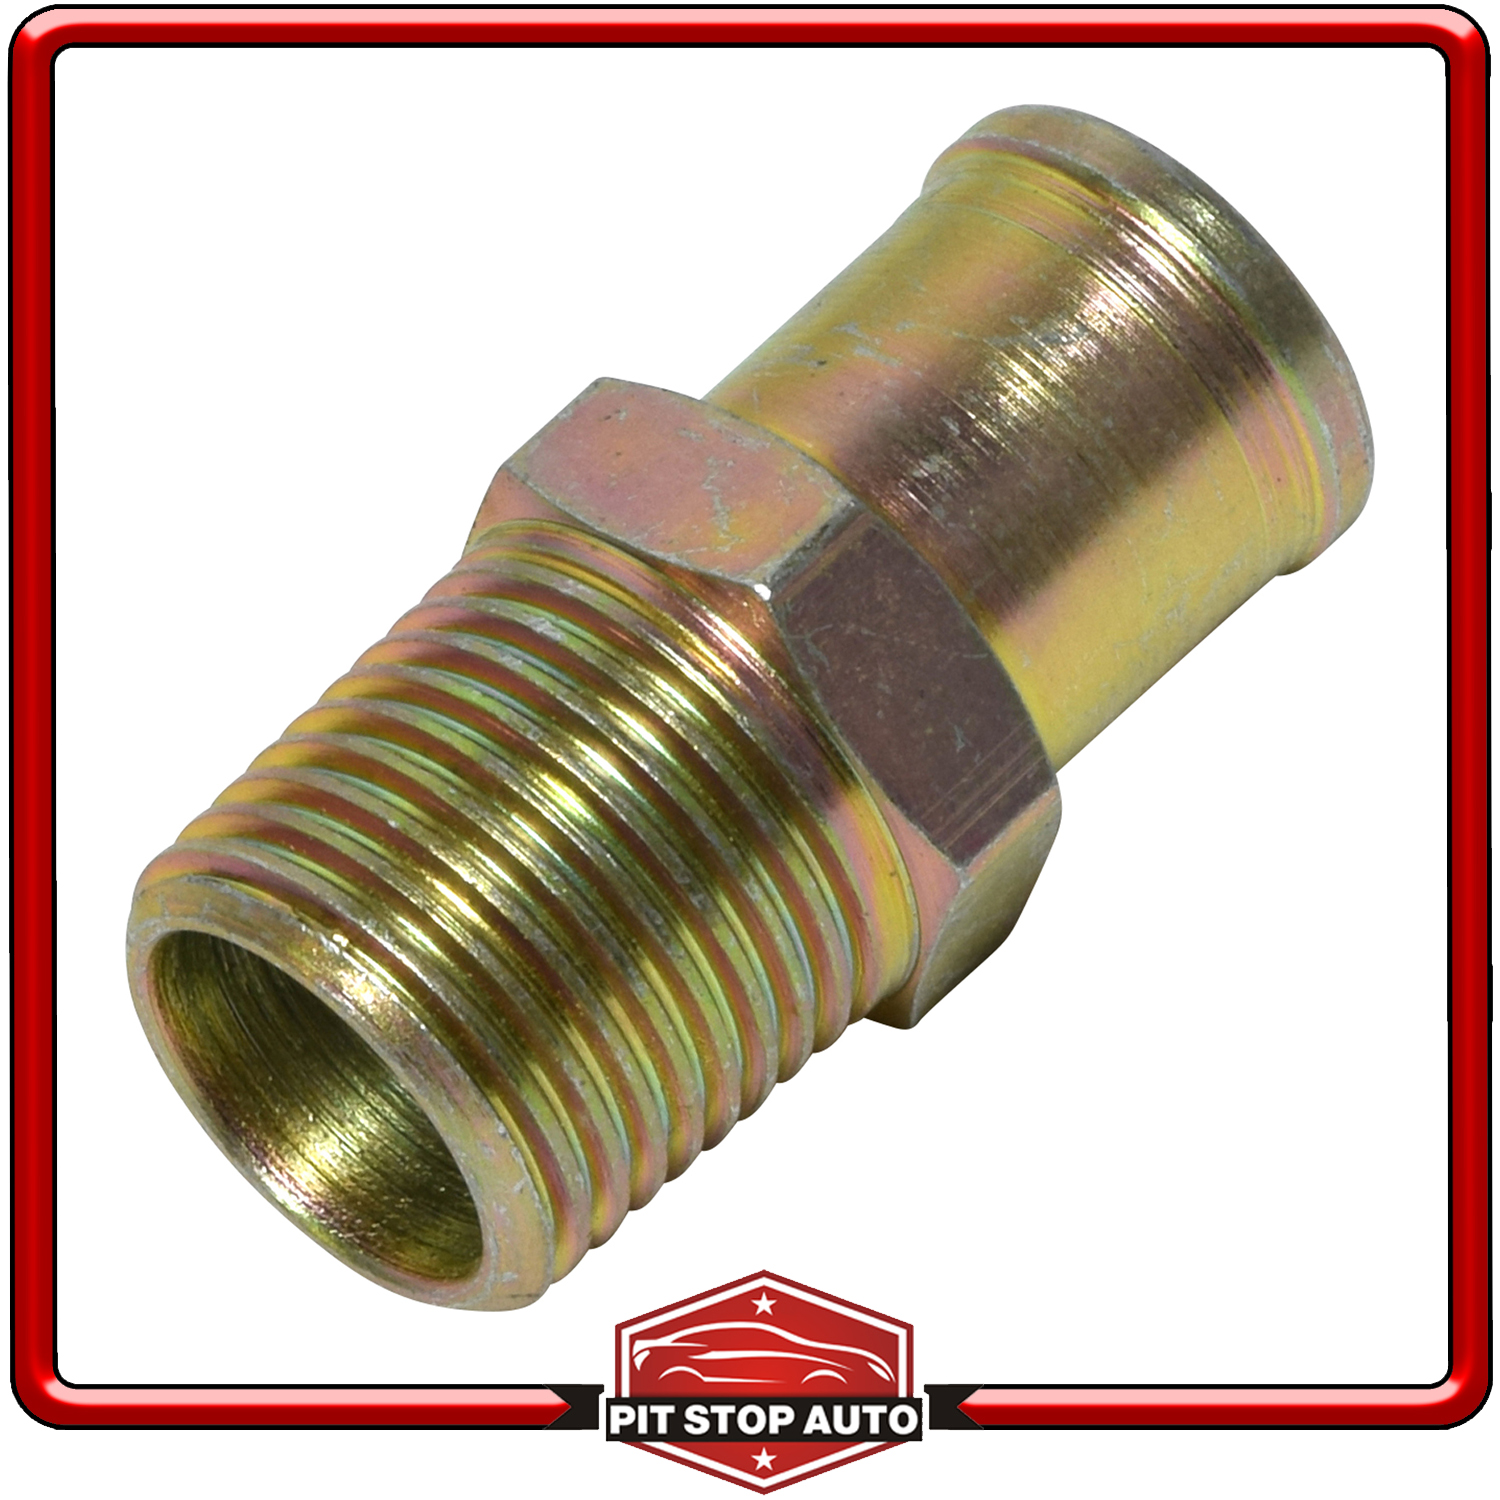 #BA0707 New A/C HVAC Heater Fitting HF 1903C Best 4493 Hvac Pipe Fittings photos with 1500x1500 px on helpvideos.info - Air Conditioners, Air Coolers and more